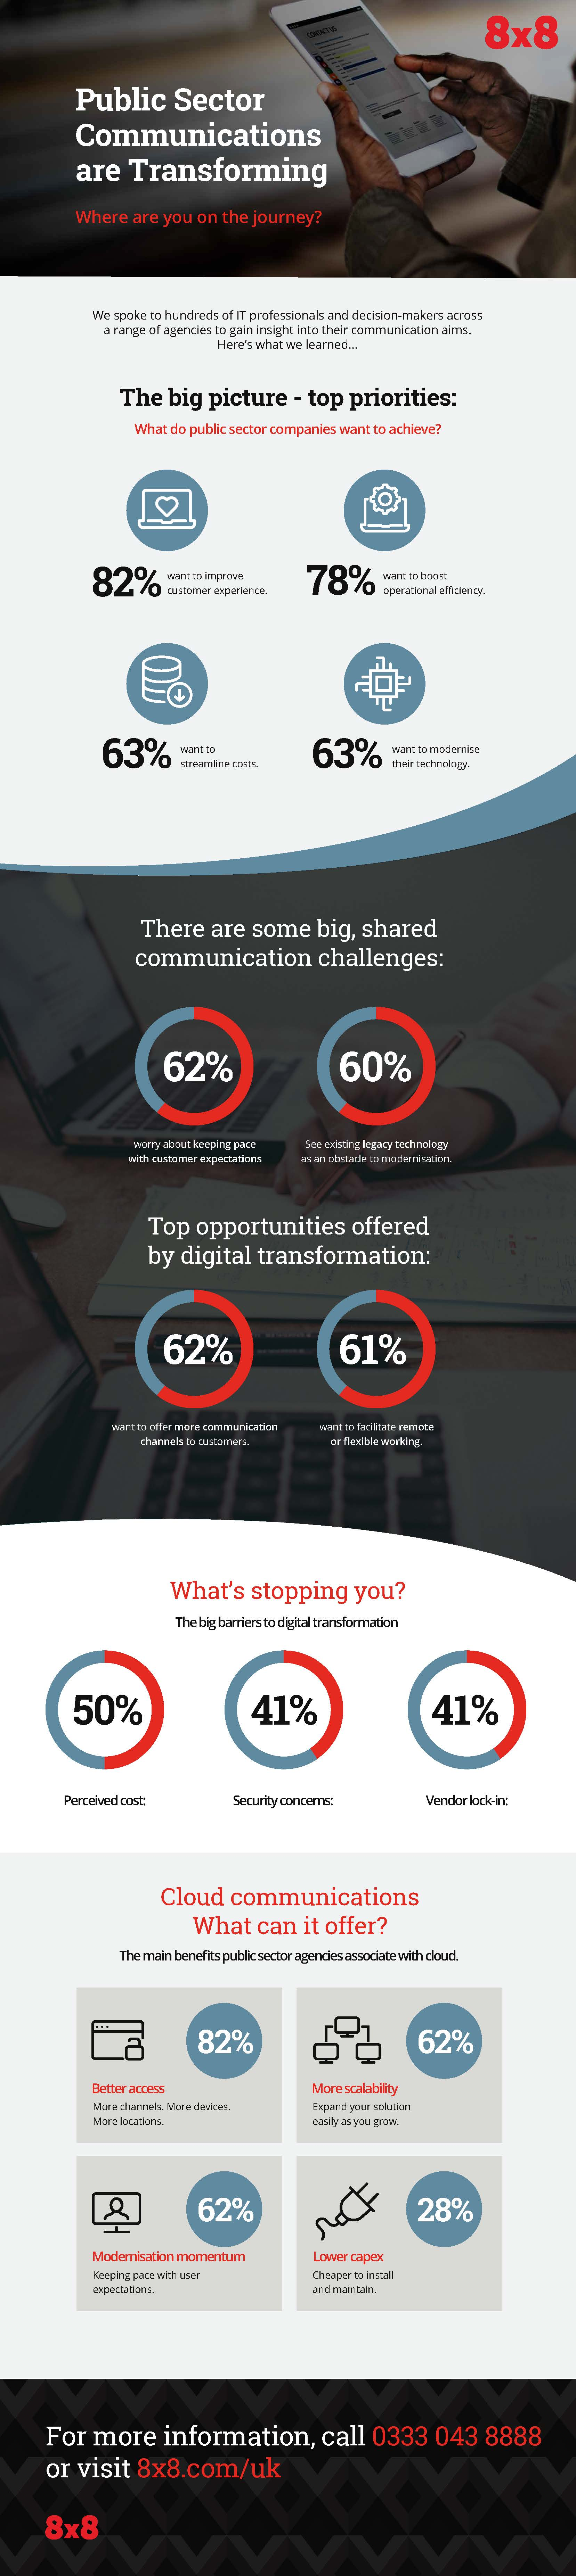 Public Sector Communications are Transforming infographic